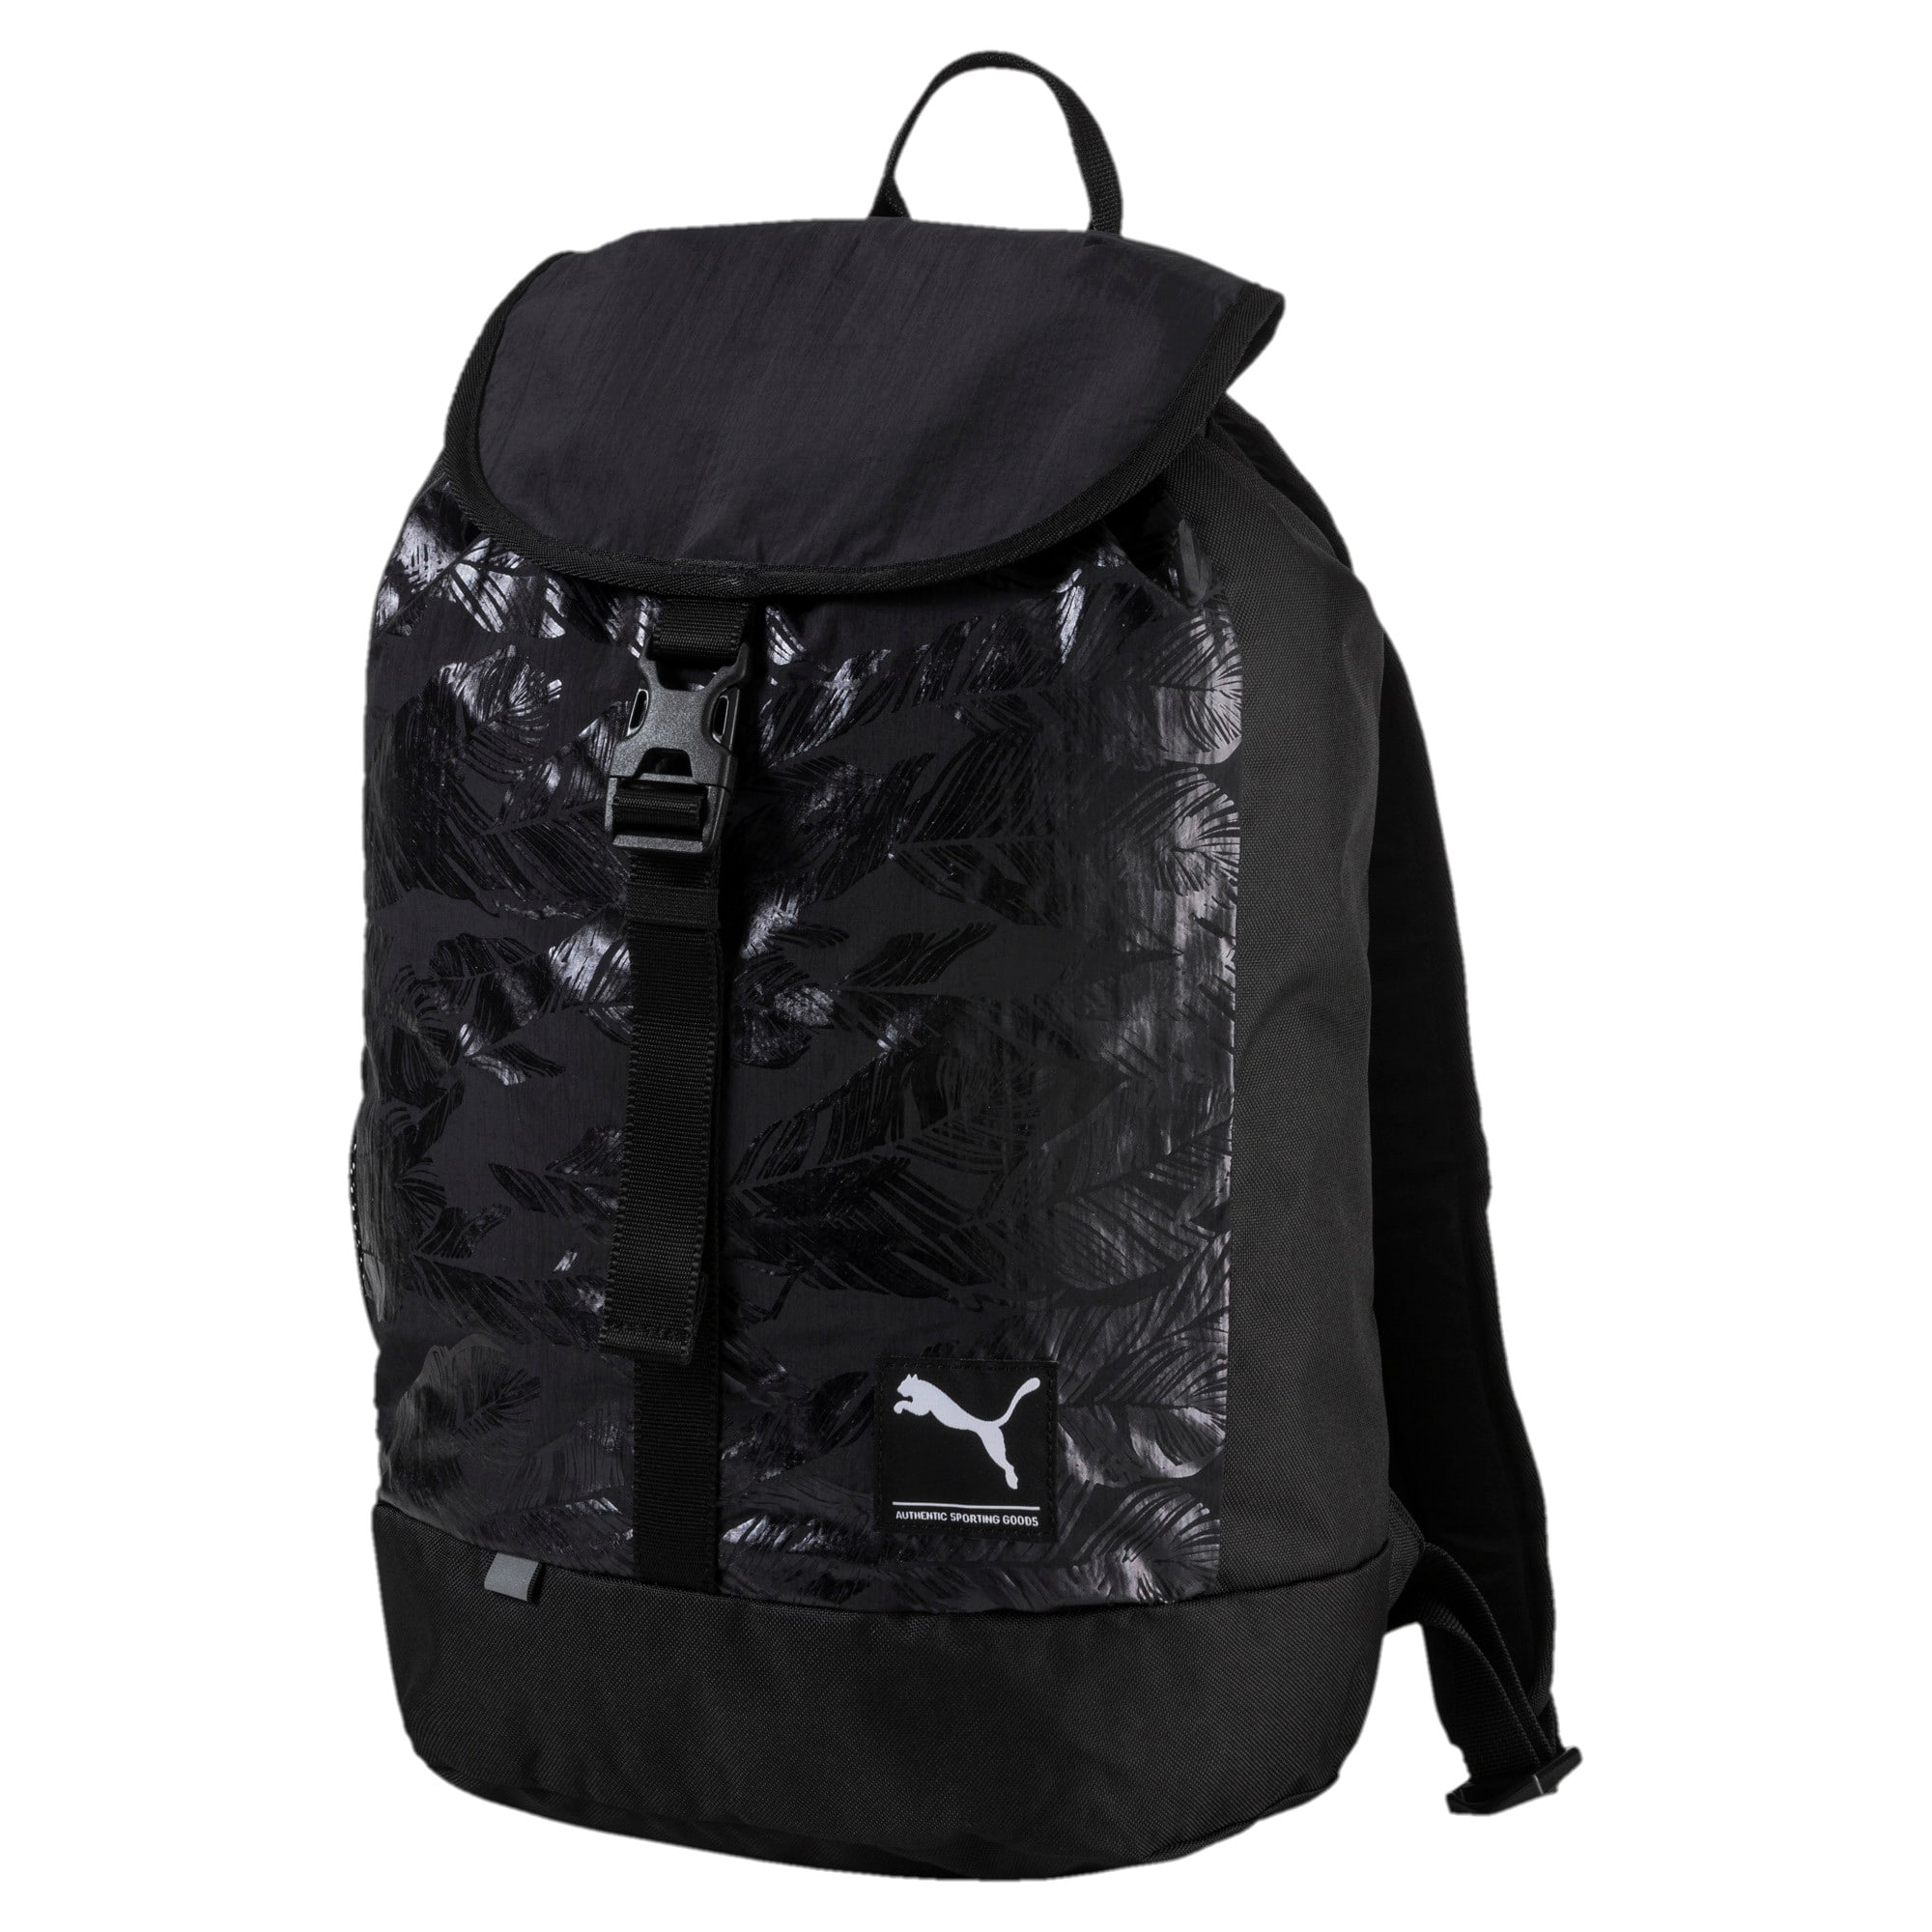 Thumbnail 1 of Women's Academy Backpack, Puma Black-SWAN, medium-IND